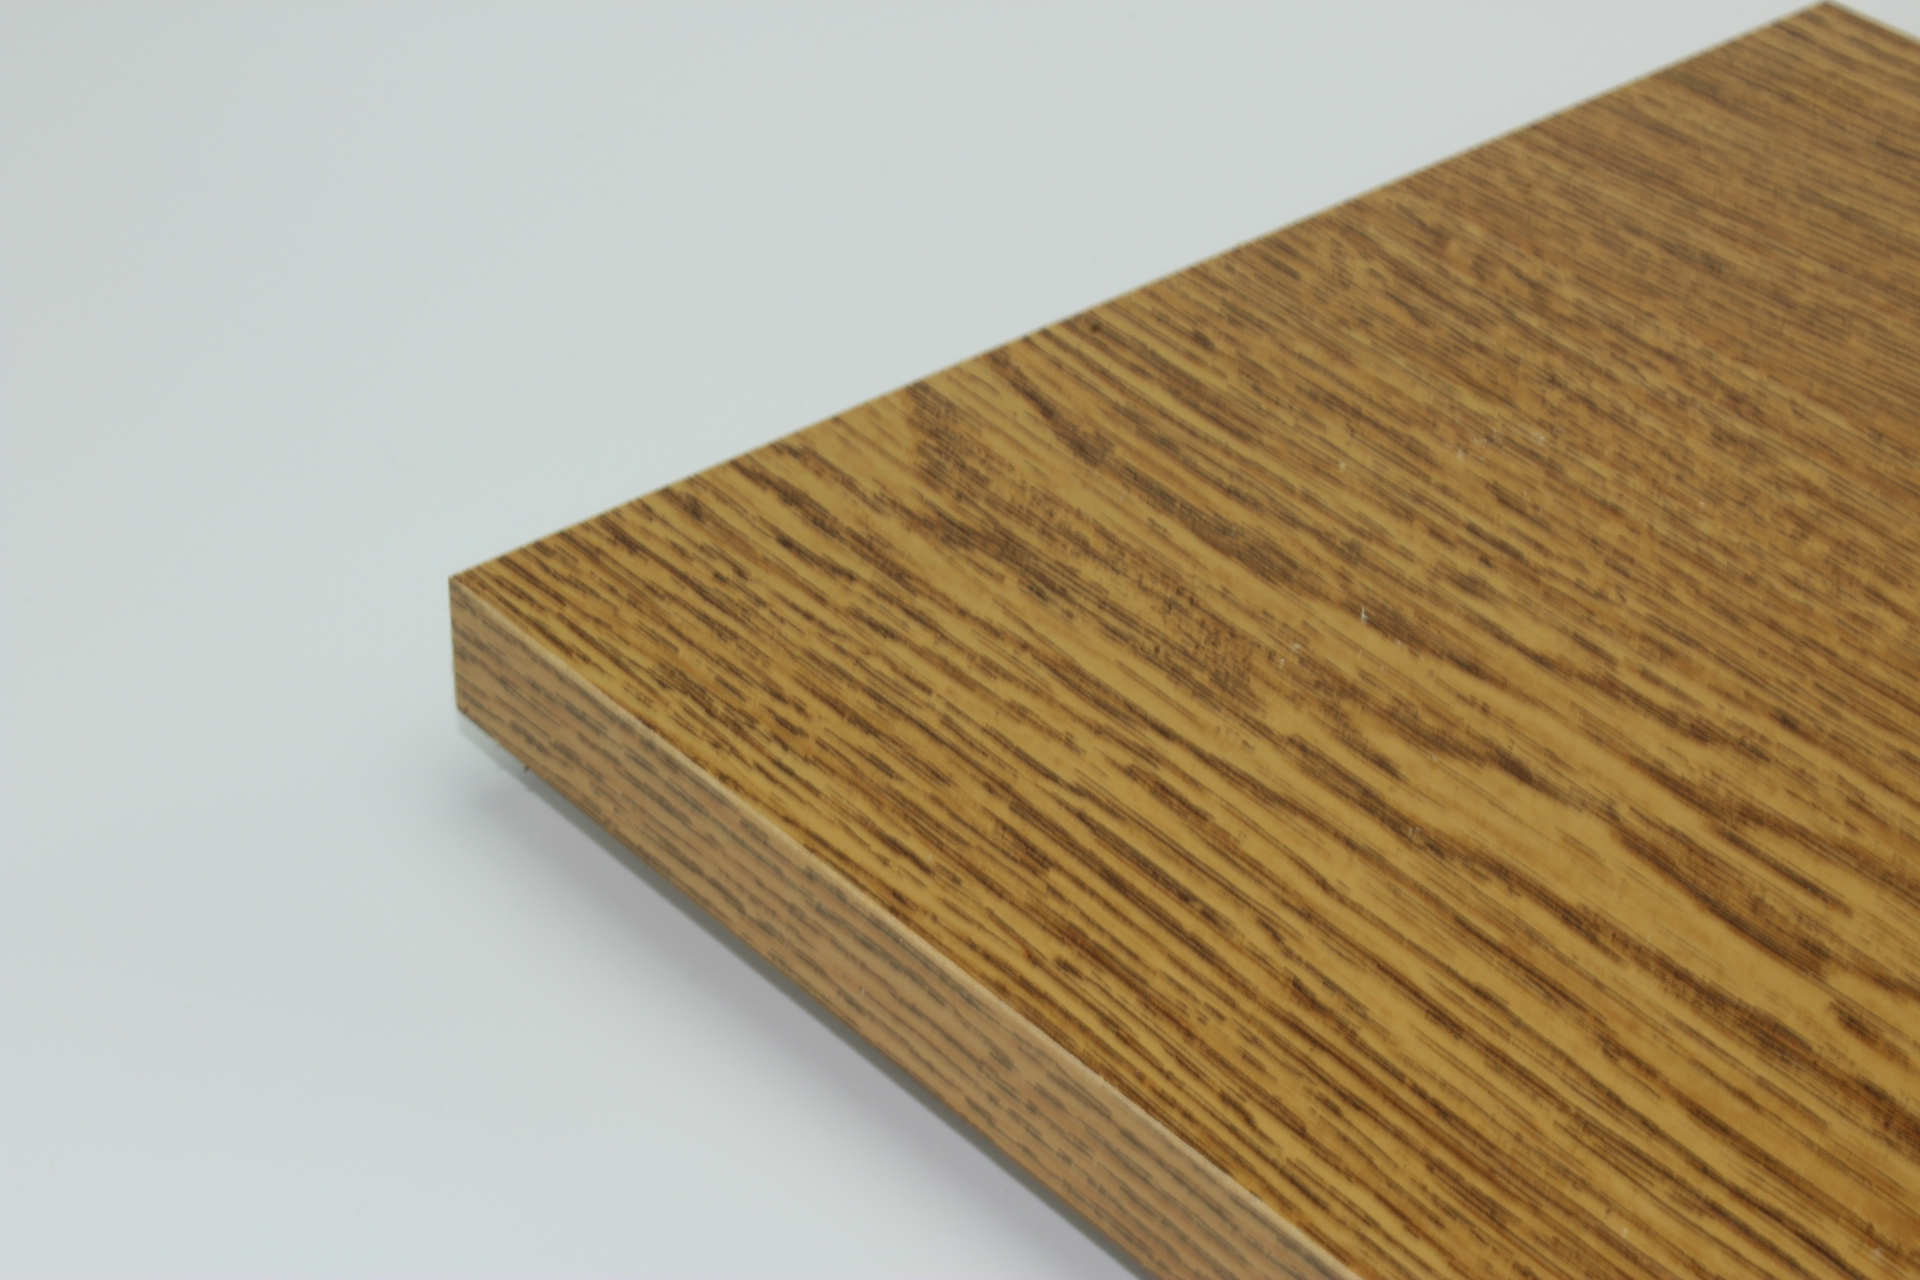 Holzboden 19mm 80x25cm Eiche Rustikal 080257